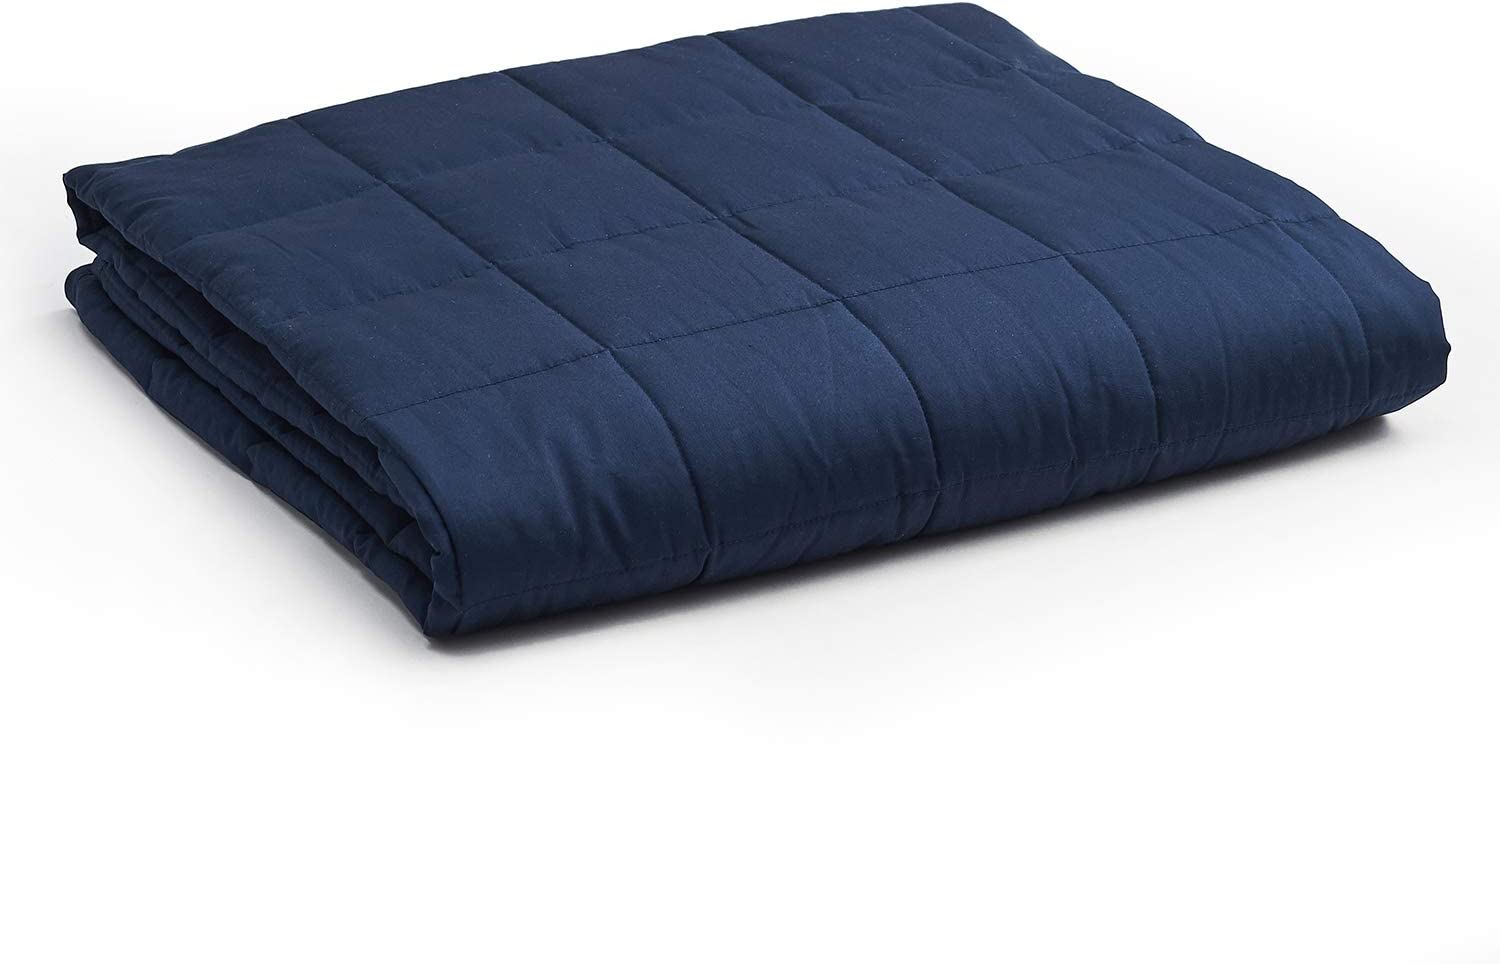 YnM Weighted Blanket — Heavy 100% Oeko-Tex Certified Cotton Material with Premium Glass Beads (Navy, 60''x80'' 15lbs), Suit for One Person(~140lb) Use on Queen/King Bed